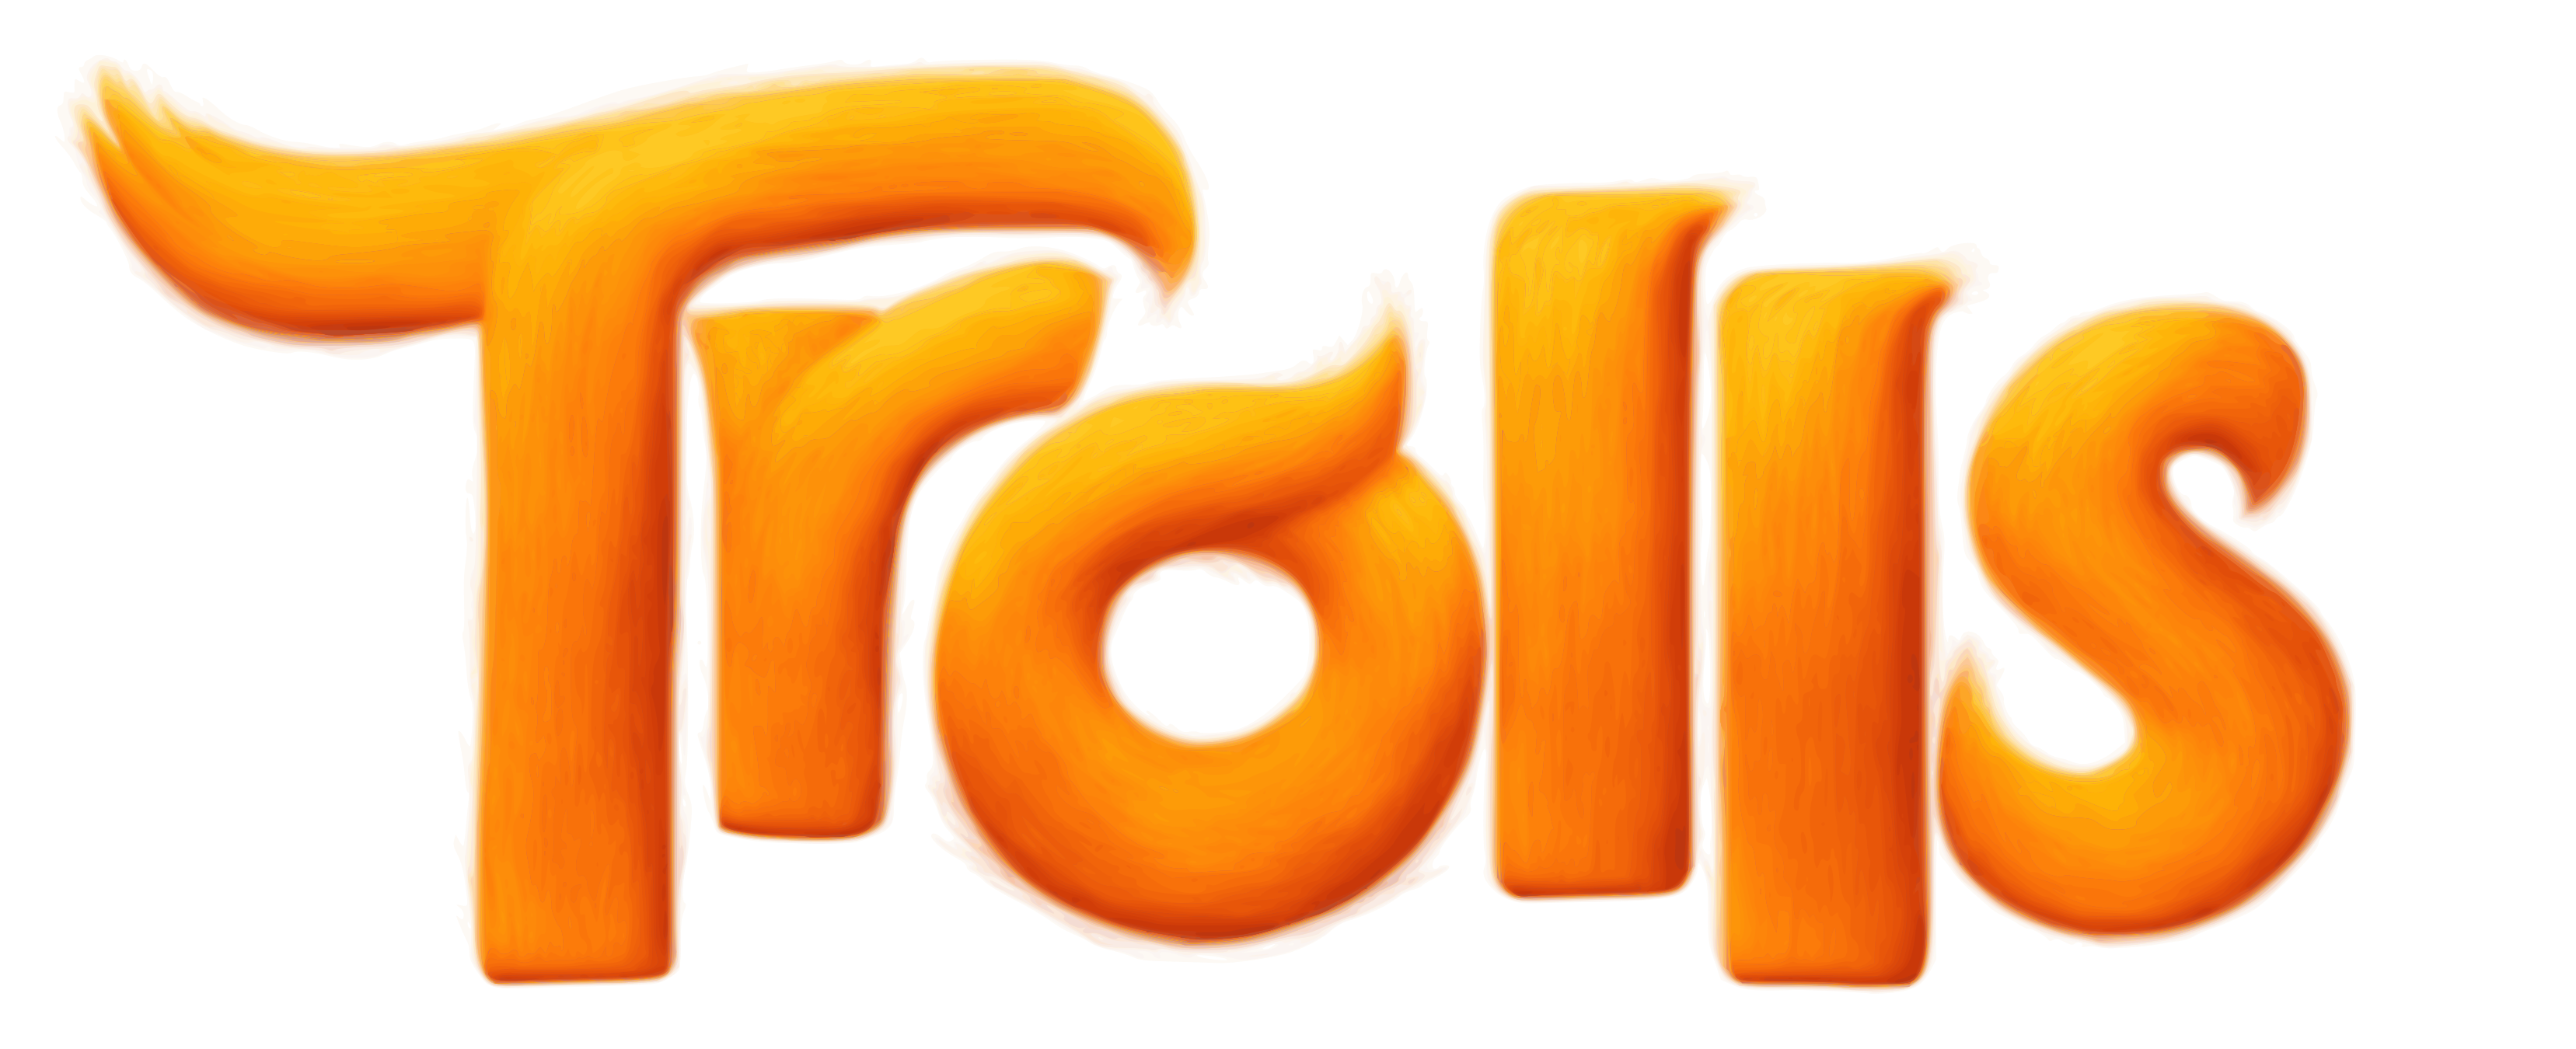 Trolls_-_Alternative_Logo